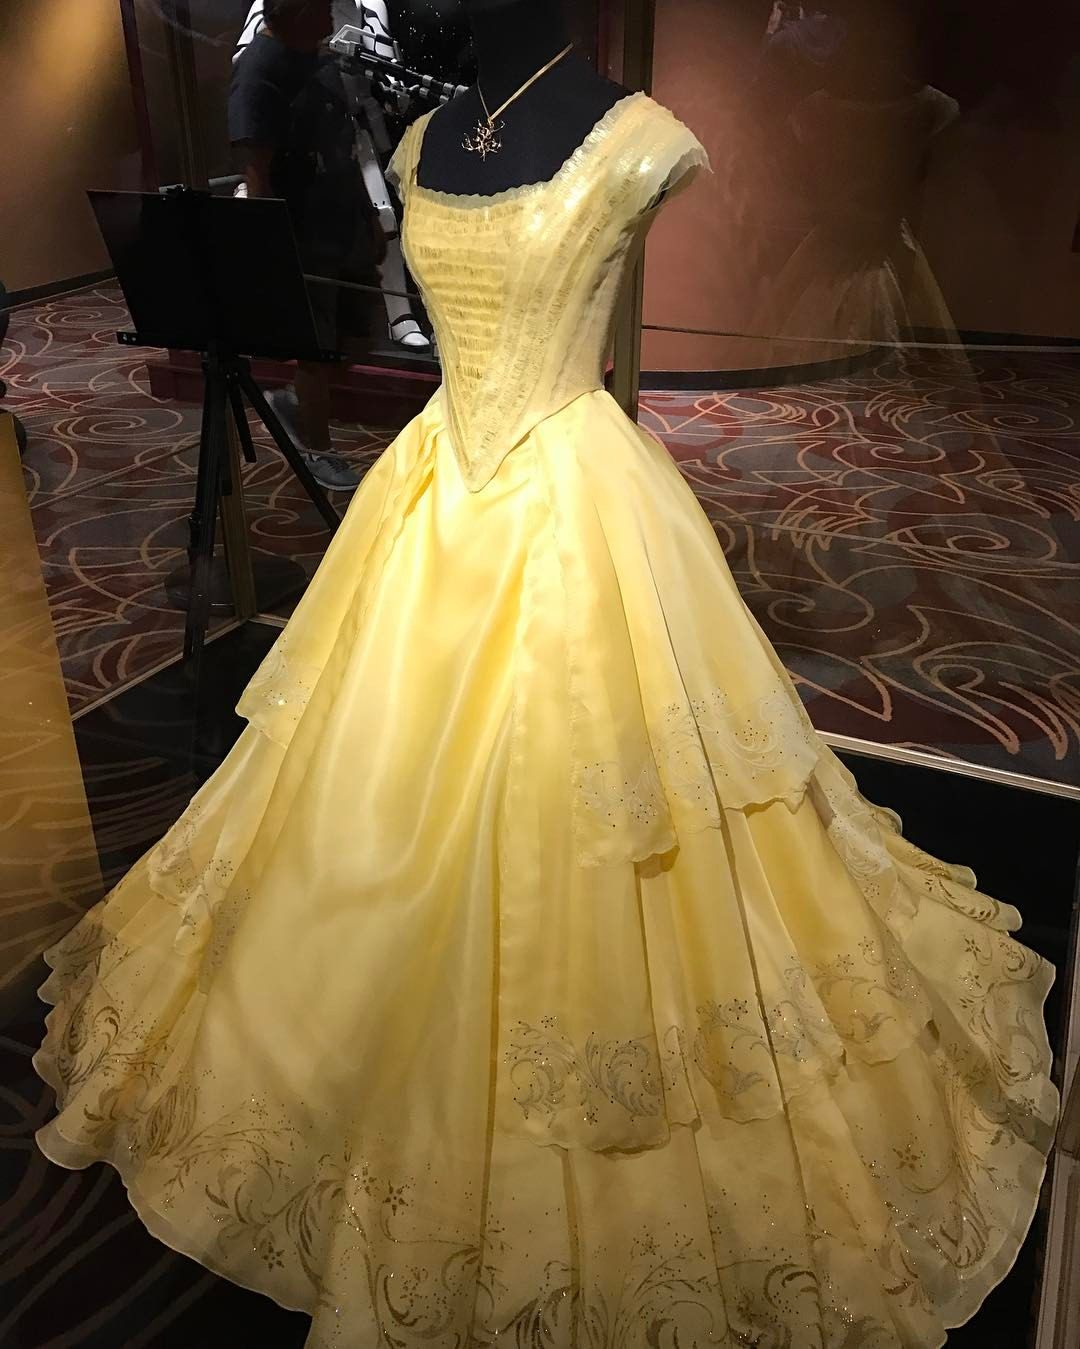 Belle's Dress And The Enchanted Rose Are On Display At The